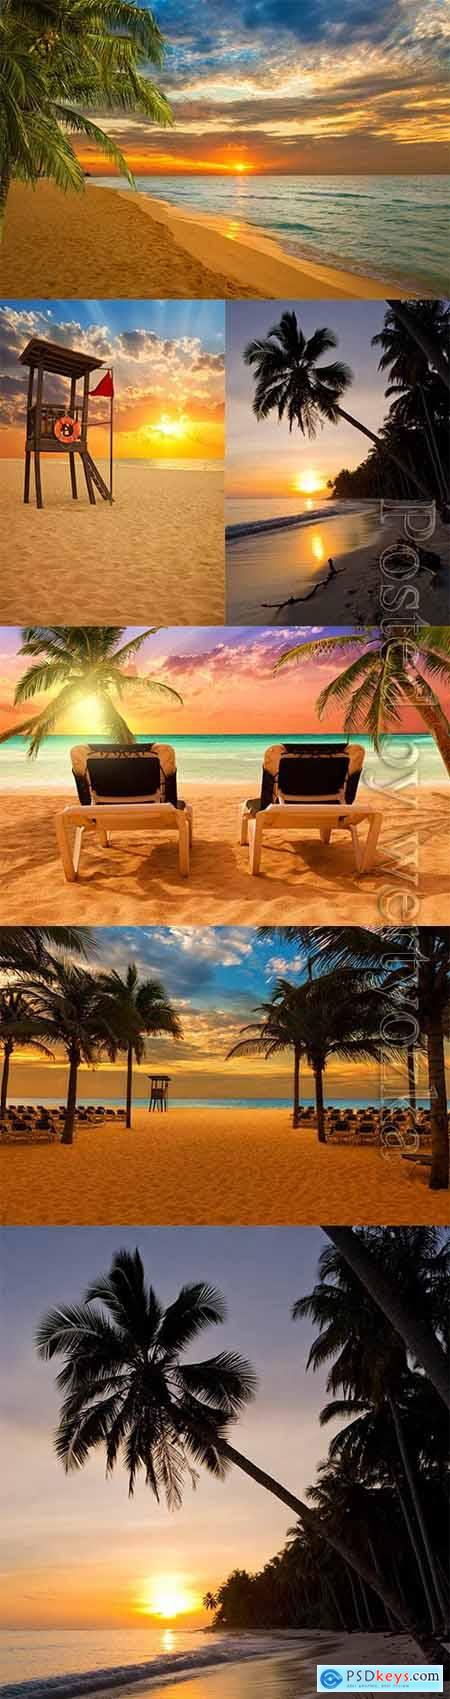 Sunset at the seaside, palm trees stock photo